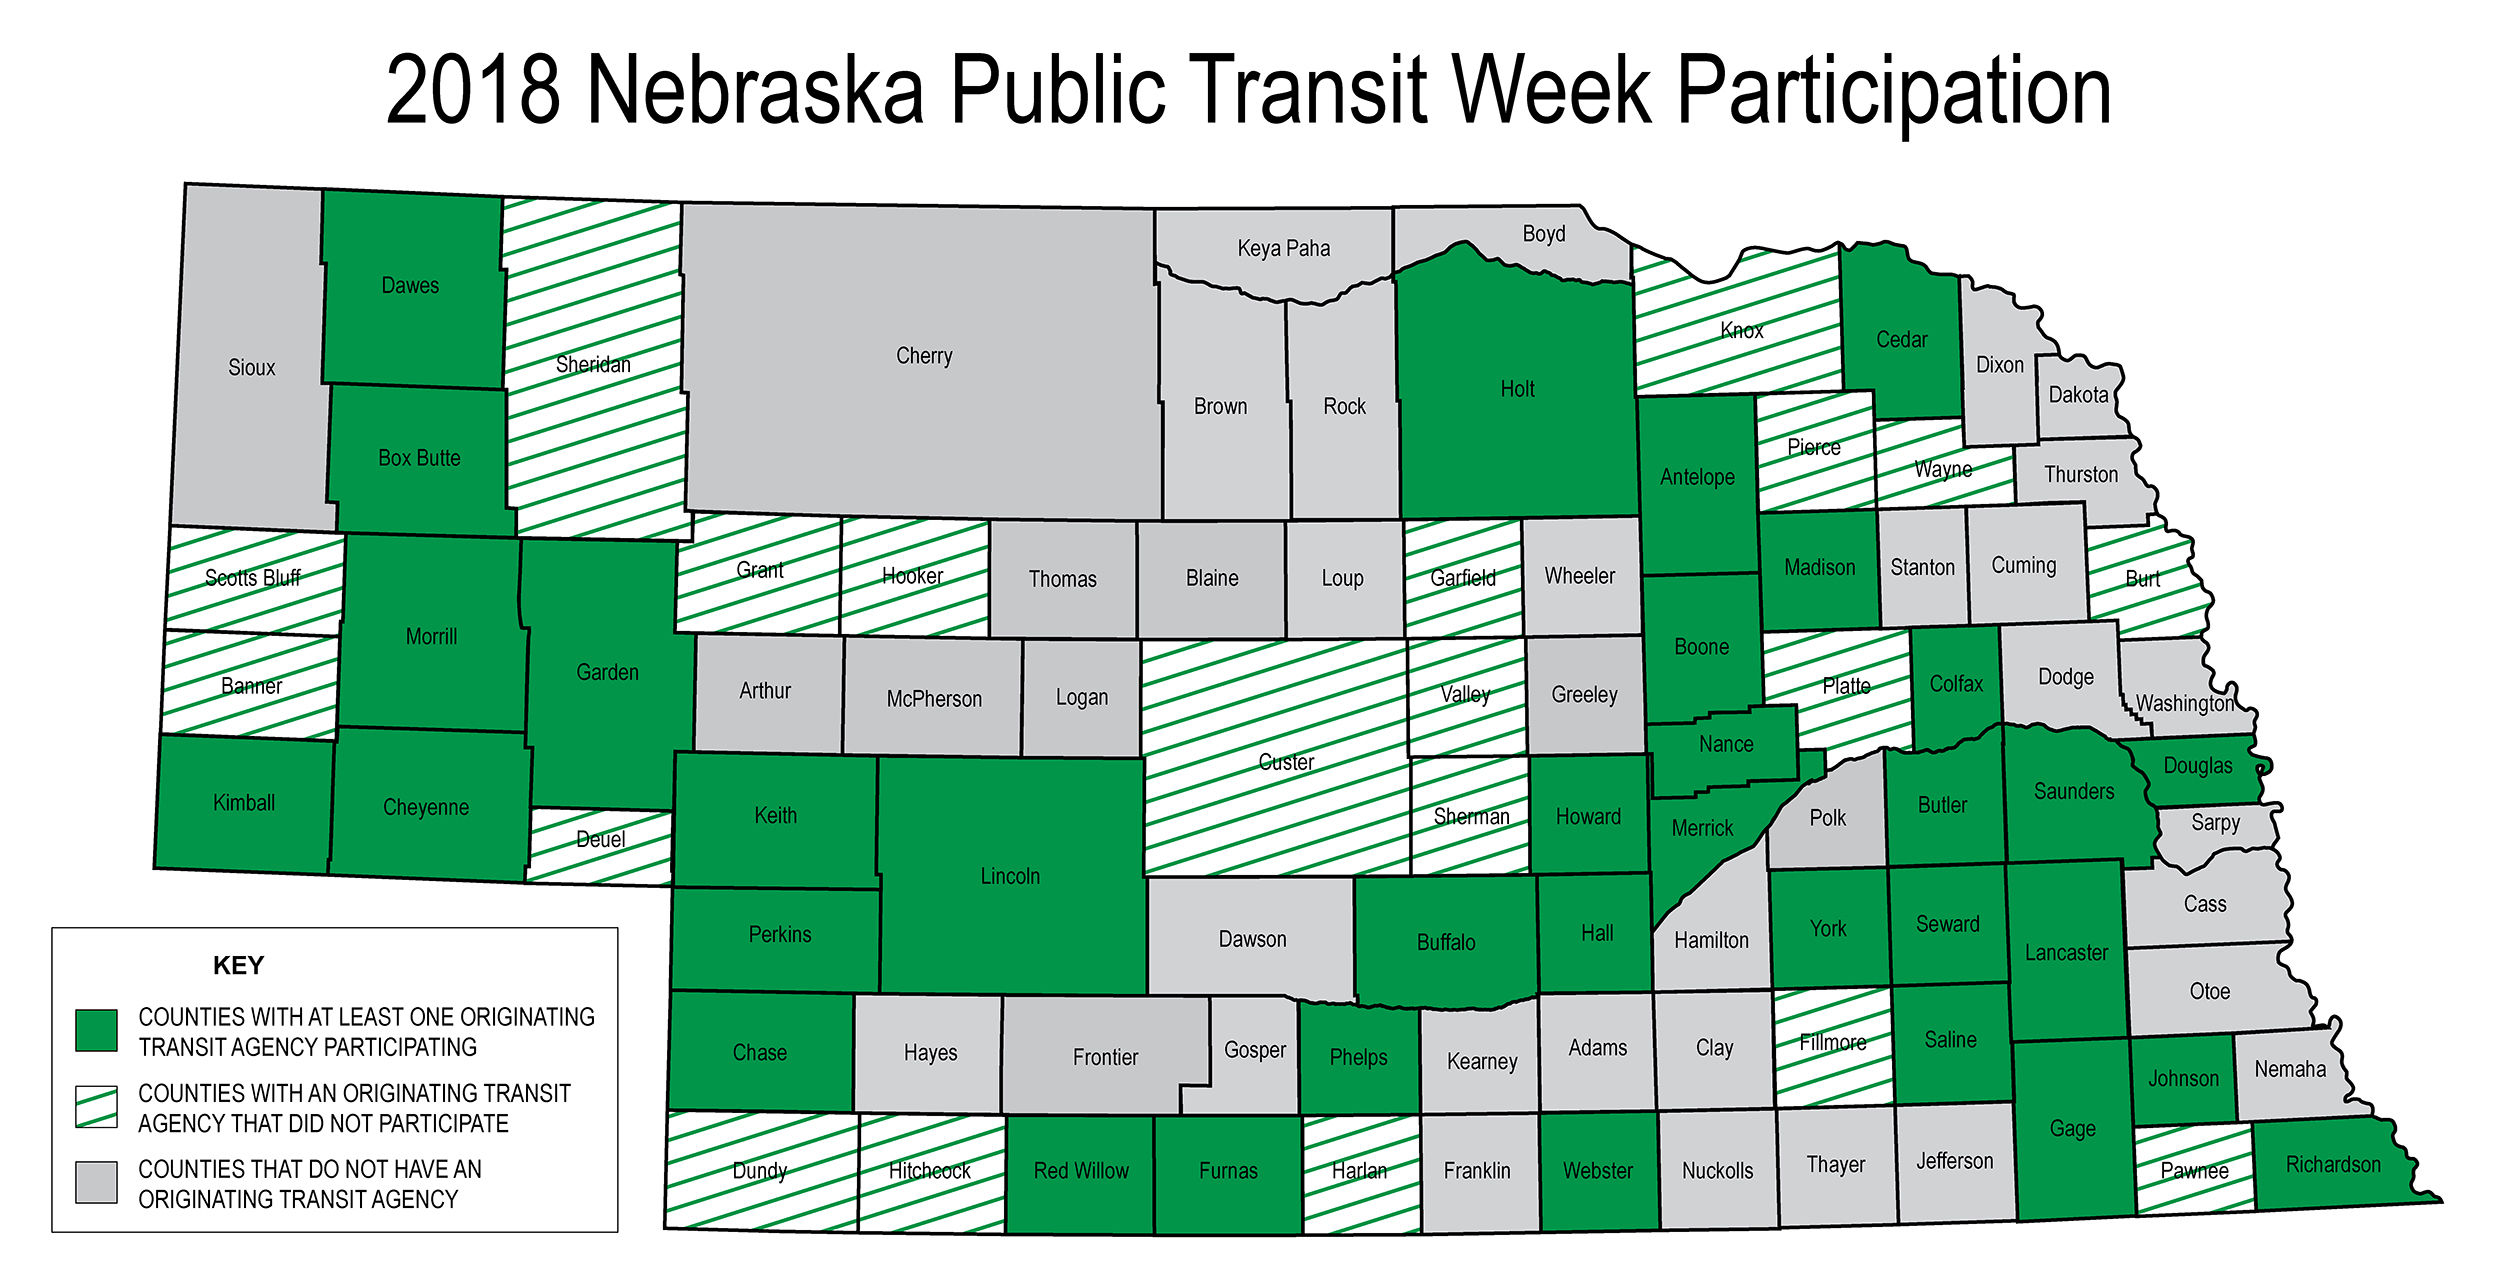 2018 Nebraska Public Transit Week Participation Map